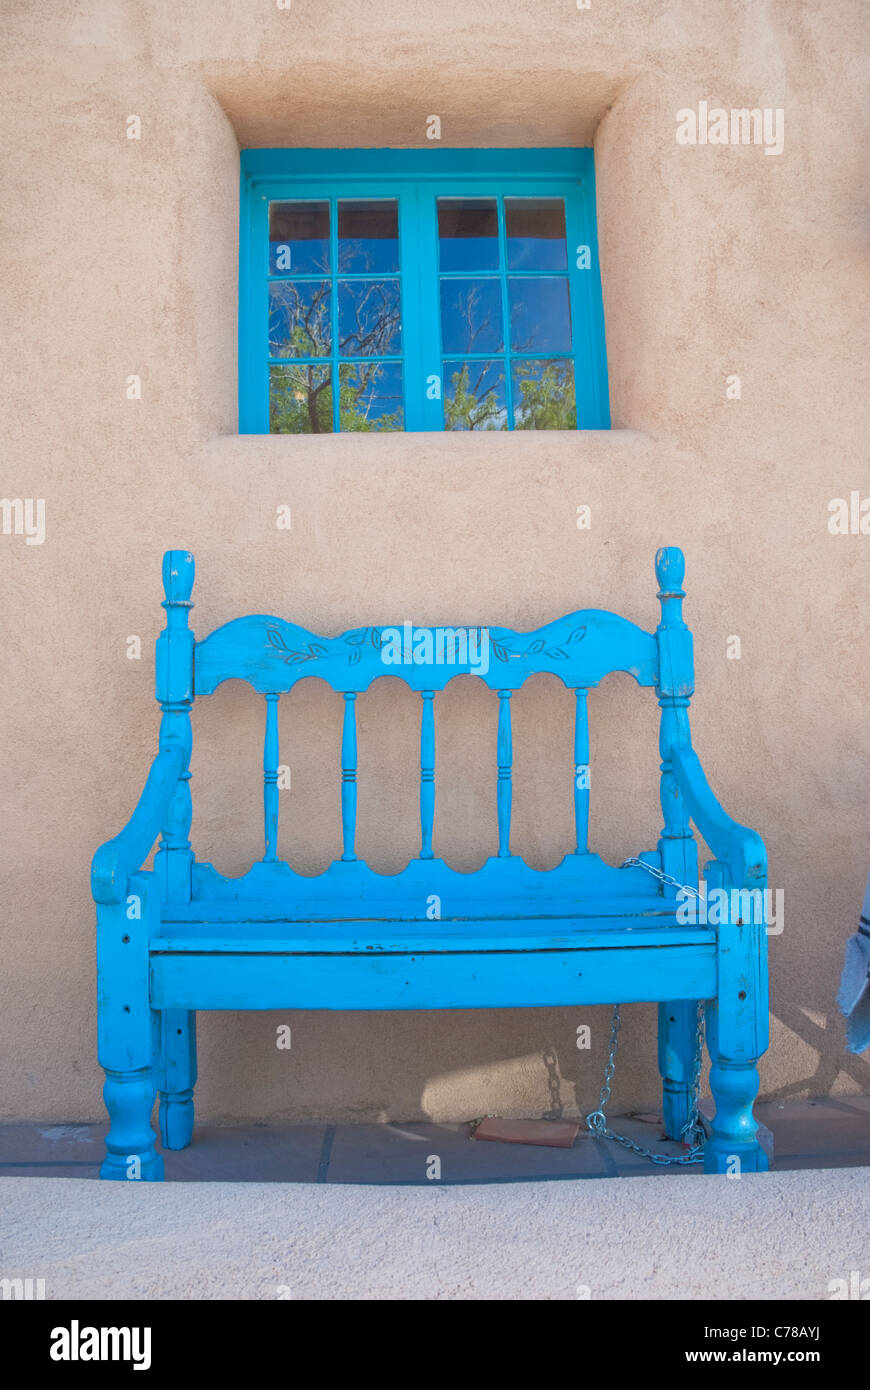 Southwestern blue accents doors windows and benches on Canyon Road in Santa Fe New Mexico & Southwestern blue accents doors windows and benches on Canyon Road ...